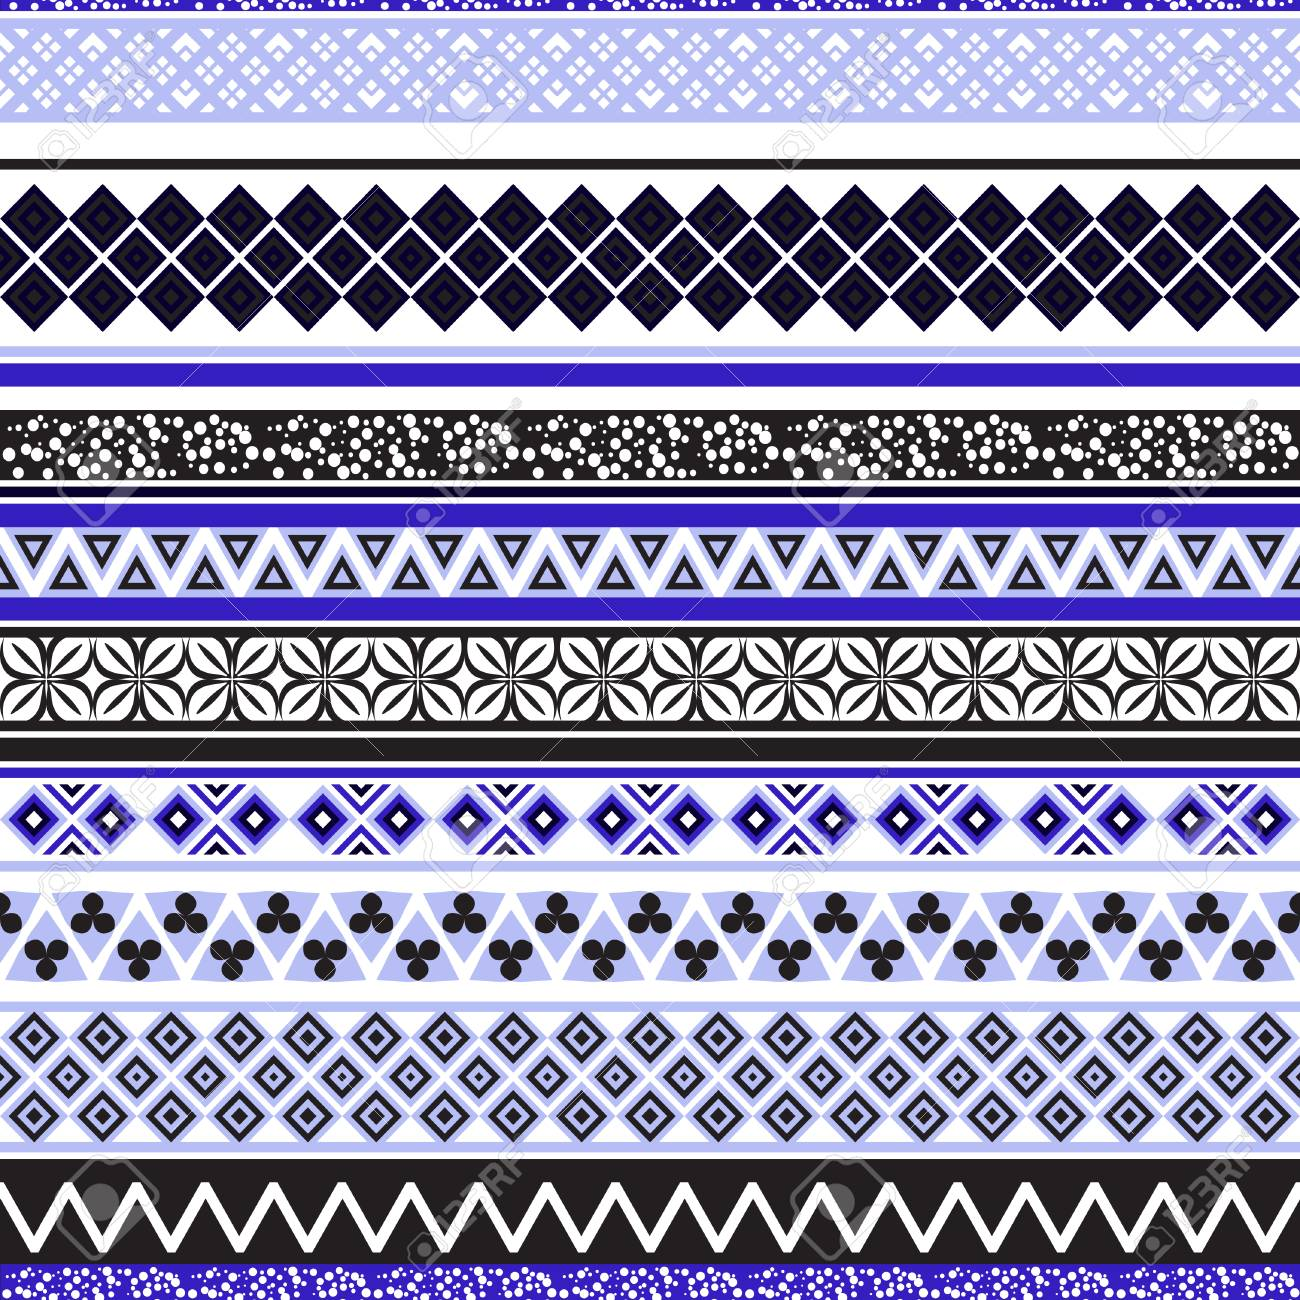 Tribal seamless pattern. Abstract background with ethnic ornament. Seamless background with different geometric shapes. Vector illustration - 62982579